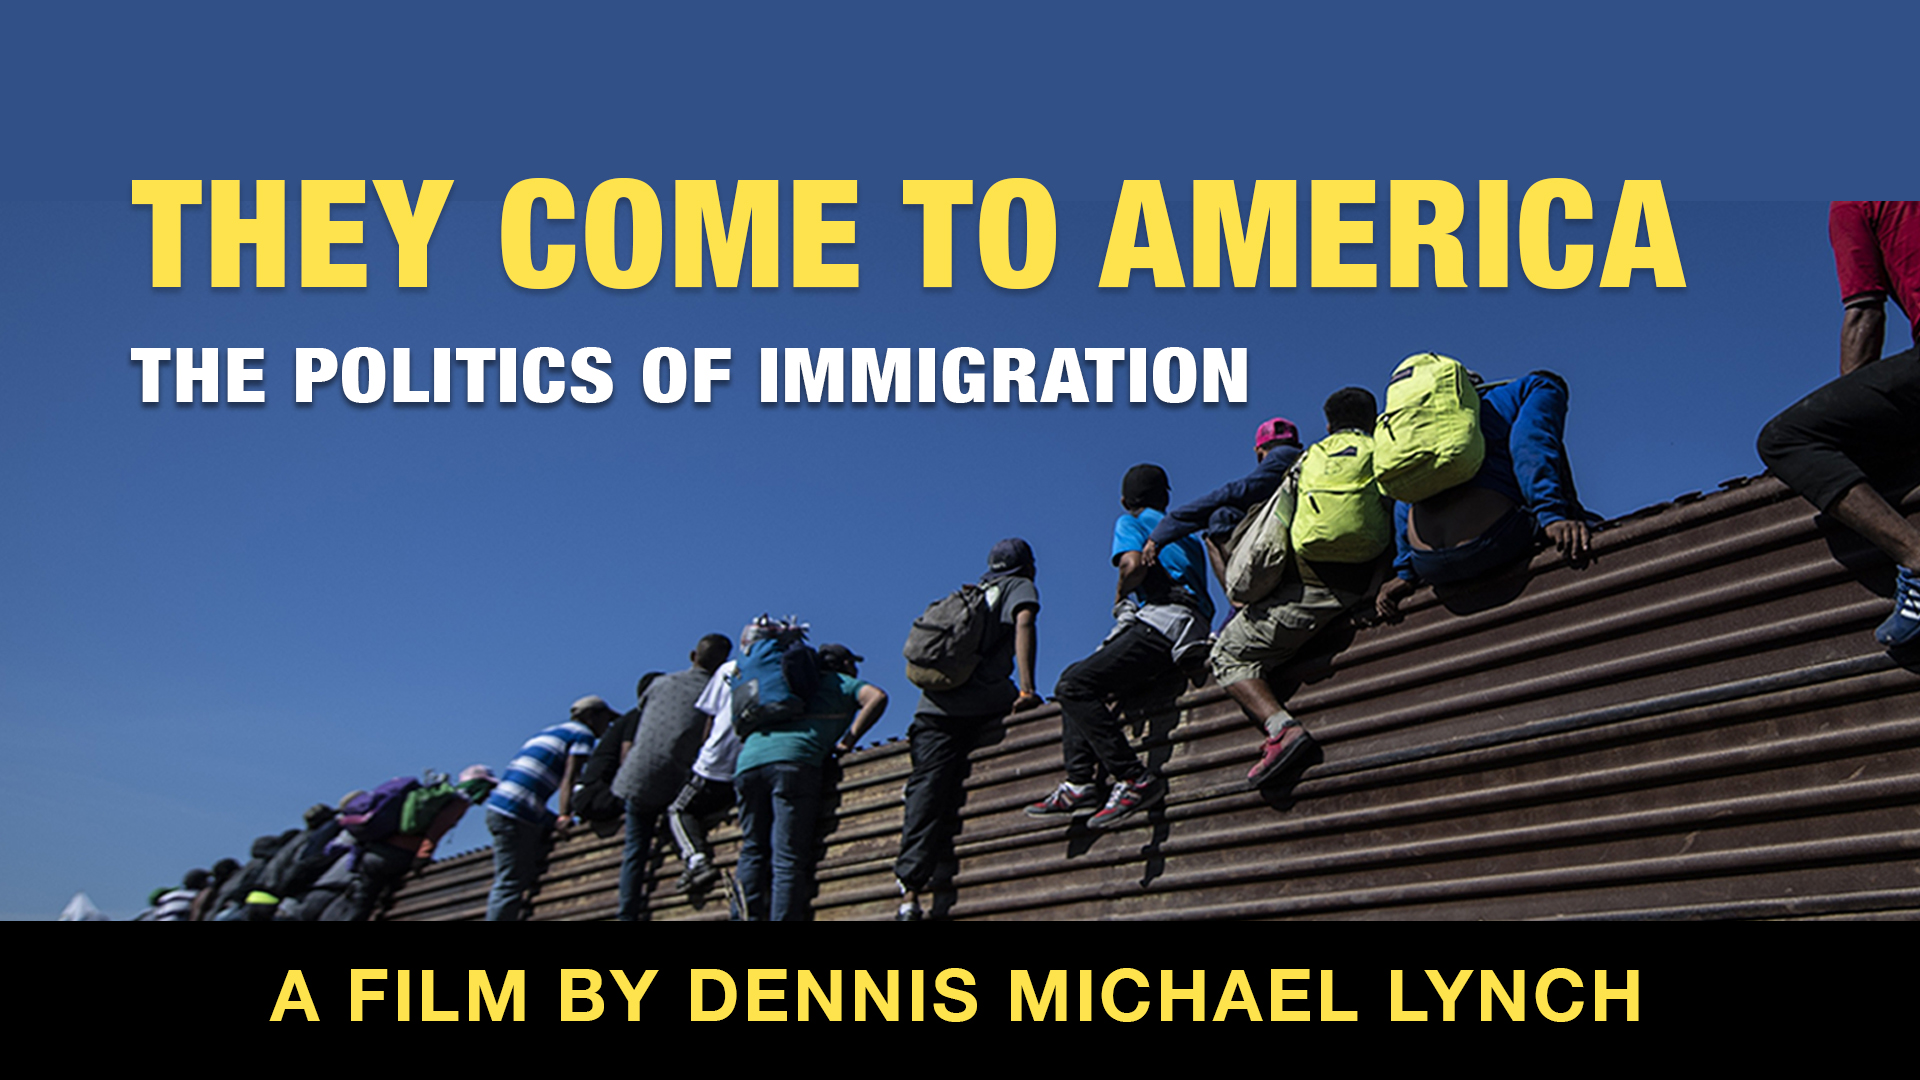 They Come to America: The Politics of Immigration